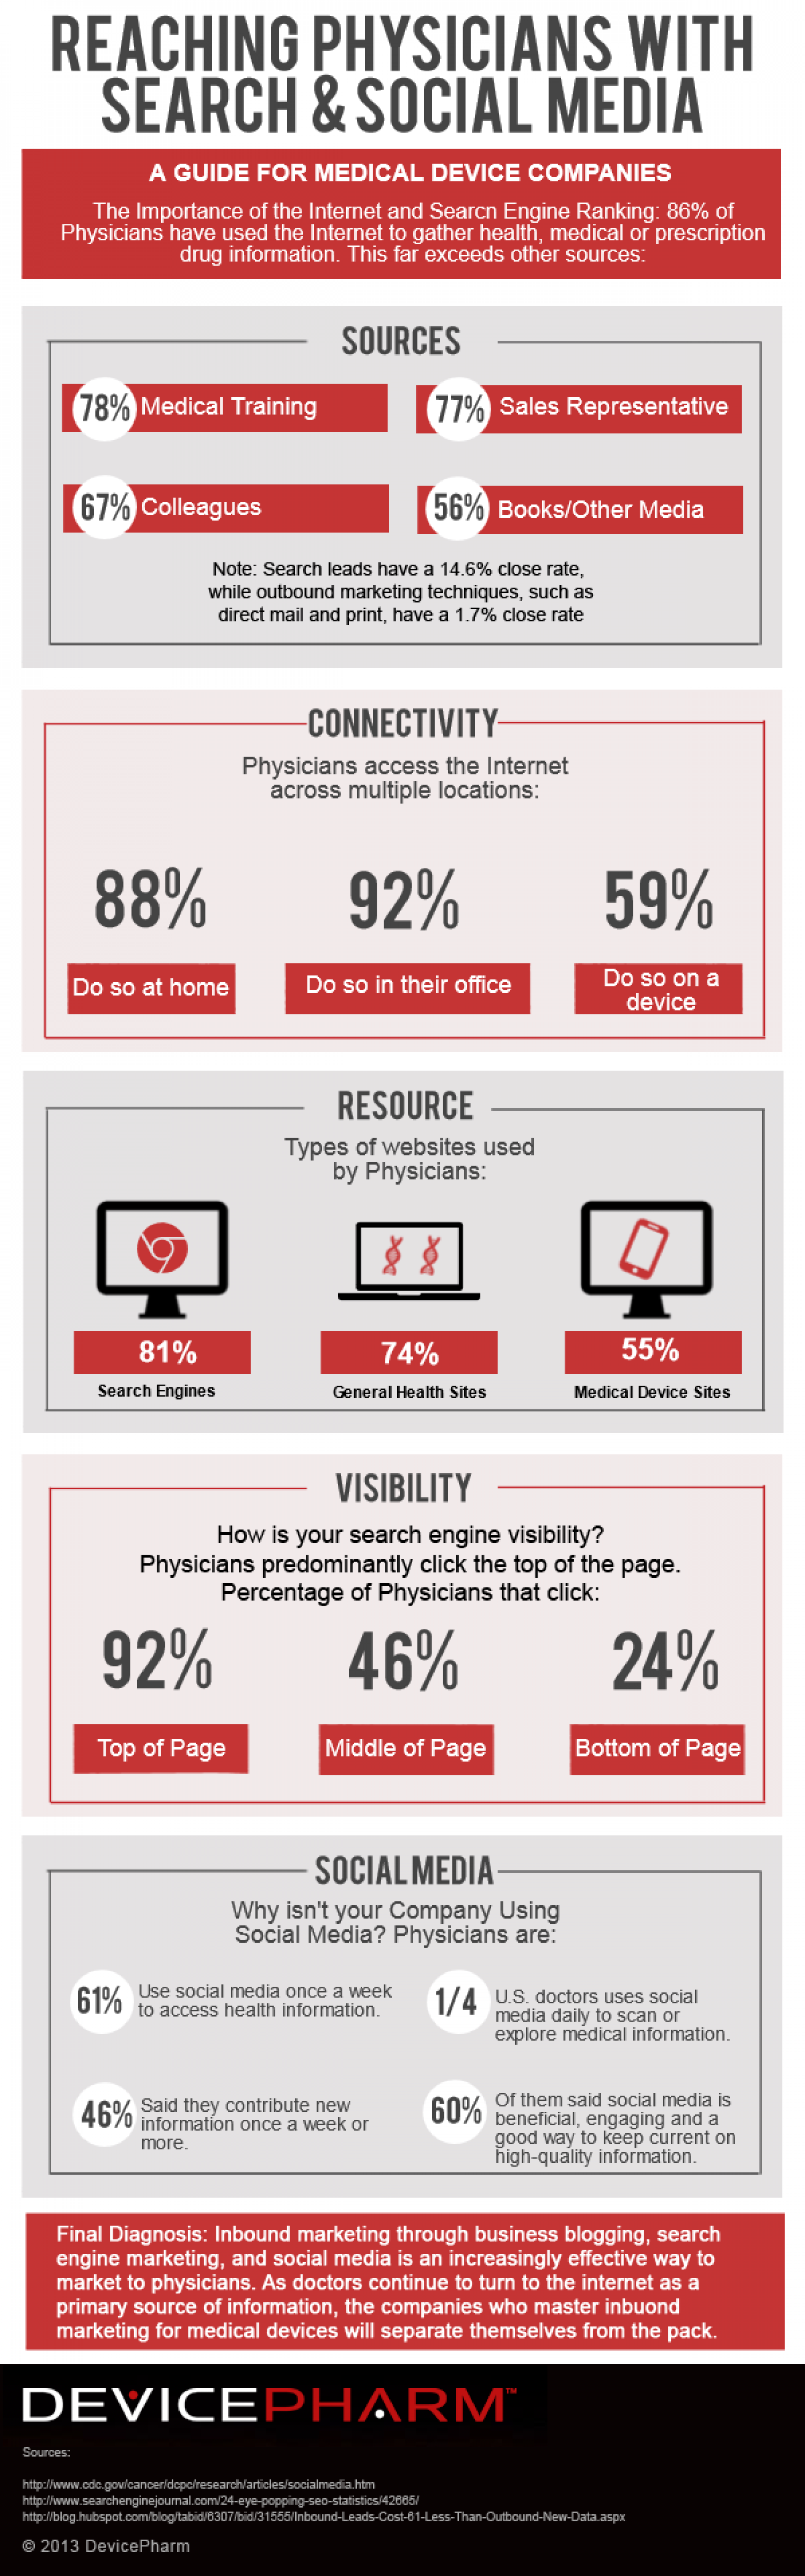 Reaching Physicians With Search & Social Media Infographic